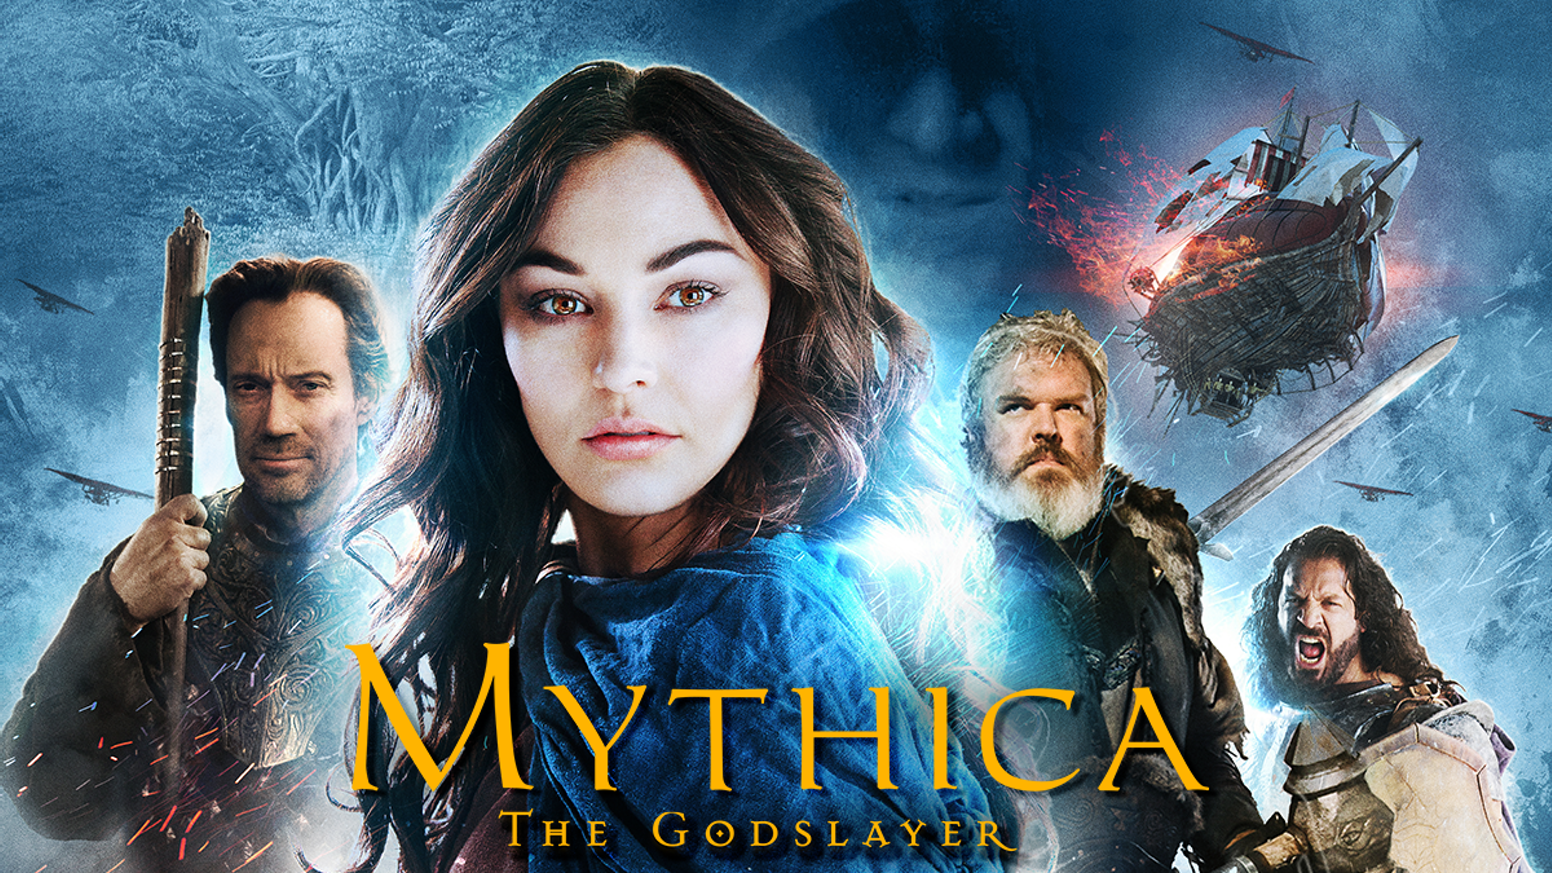 The 5th and final film in the epic Mythica series, the largest indie fantasy project ever. Don't miss this unforgettable finale.